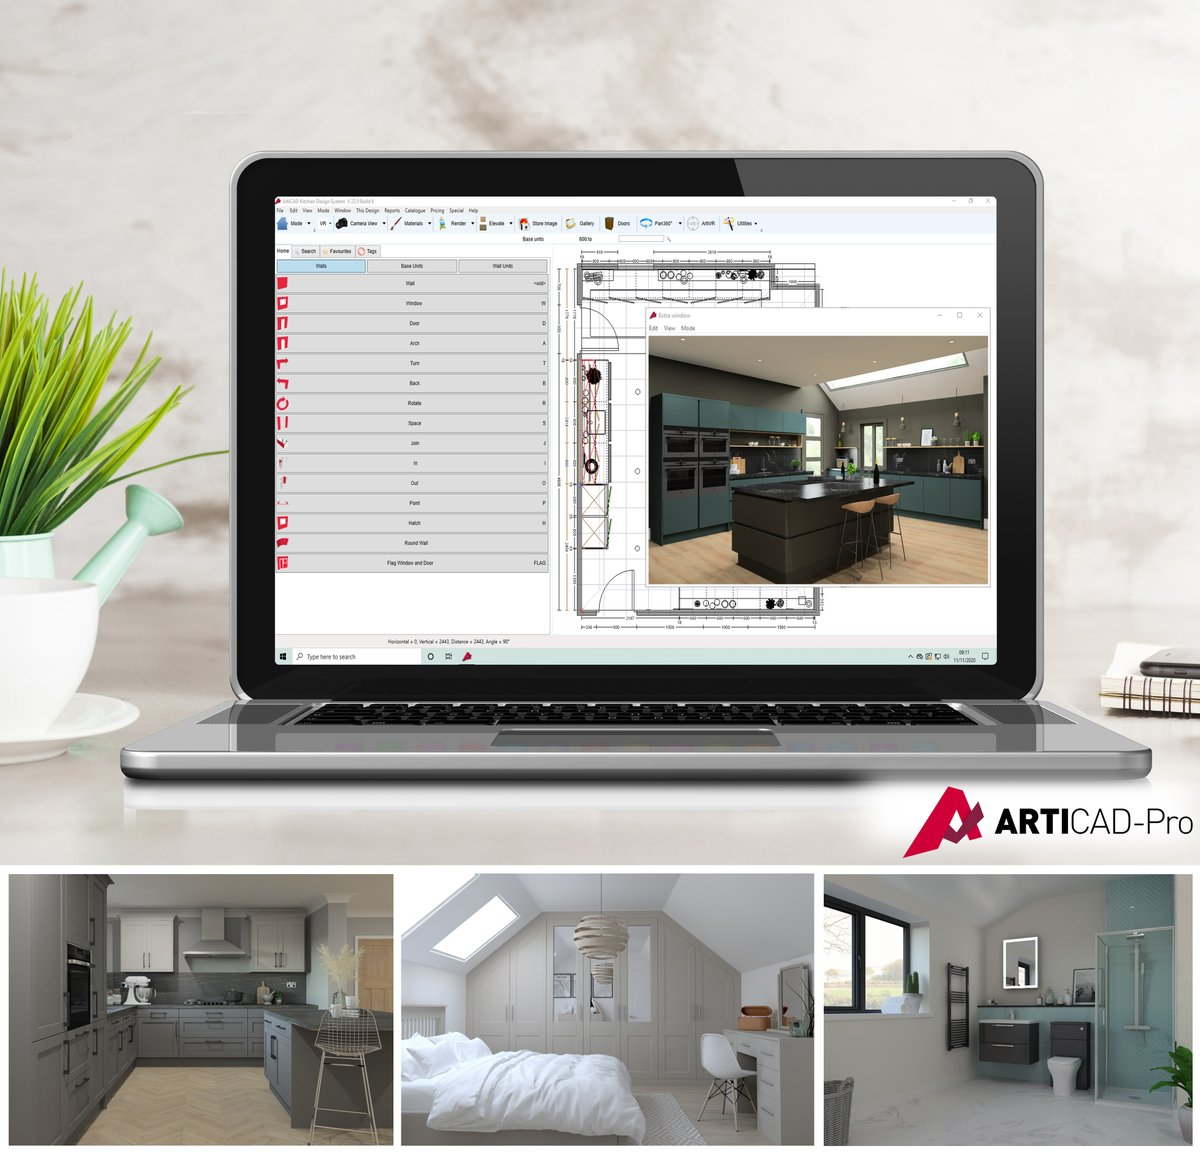 Impress more customers & secure more sales with our leading kitchen, bedroom & bathroom design software, ArtiCAD-Pro! Extremely fast & easy to learn, ArtiCAD-Pro is currently used by thousands of designers as a key part of their design & sales process. bit.ly/38dq3gQ